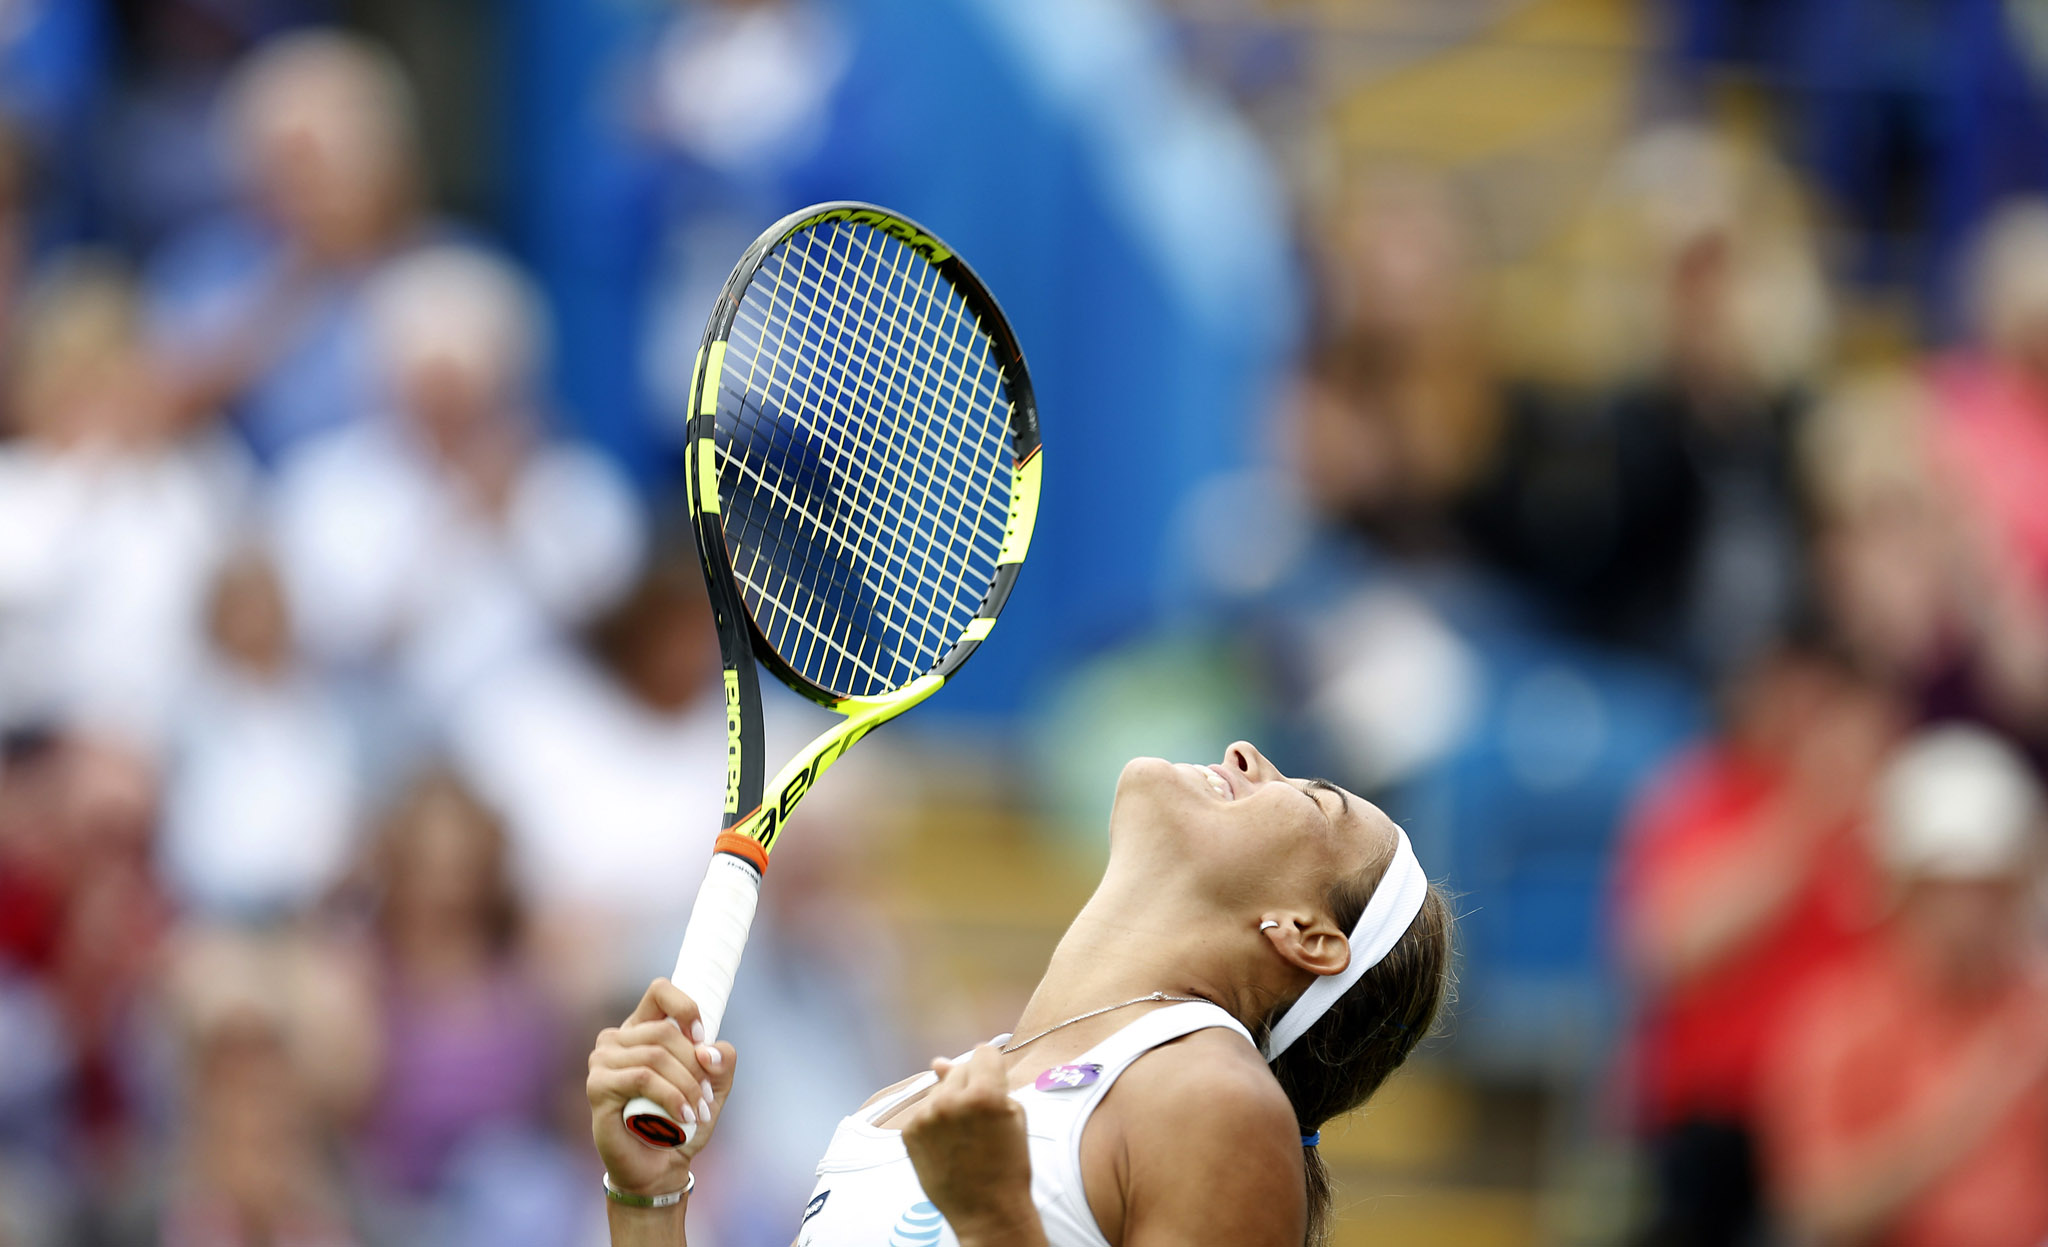 Puerto Rico's Monica Puig celebrates winning against Denmark's Caroline Wozniacki (not in picture) during day three of the 2016 AEGON International at Devonshire Park, Eastbourne. PRESS ASSOCIATION Photo. Picture date: Wednesday June 22, 2016. See PA story TENNIS Eastbourne. Photo credit should read: Steve Paston/PA Wire. RESTRICTIONS: Editorial use only, No commercial use without prior permission, please contact PA Images for further information: Tel: +44 (0) 115 8447447.